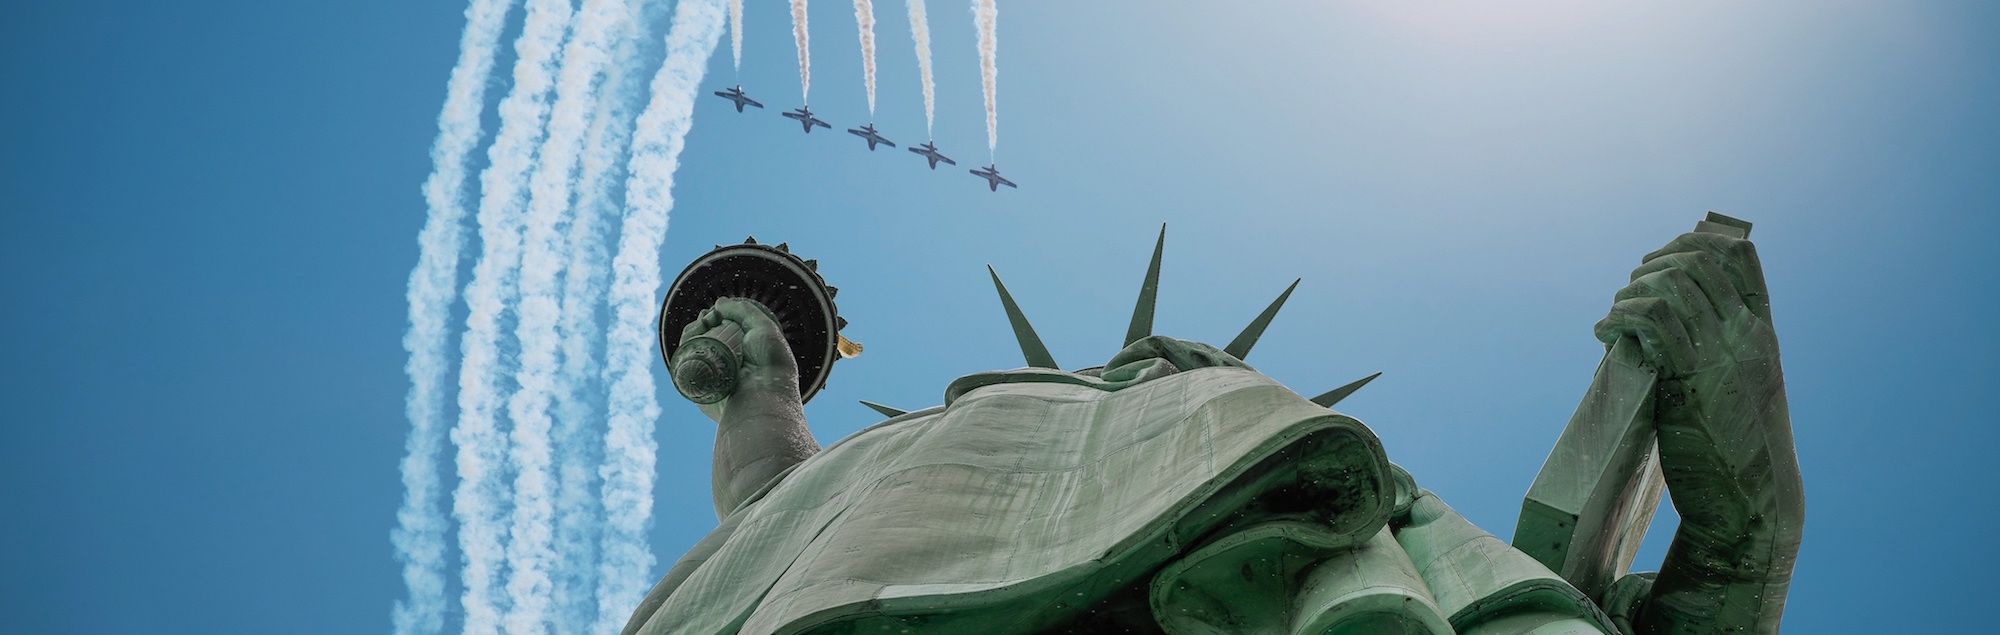 Planes flying over Statue of Liberty